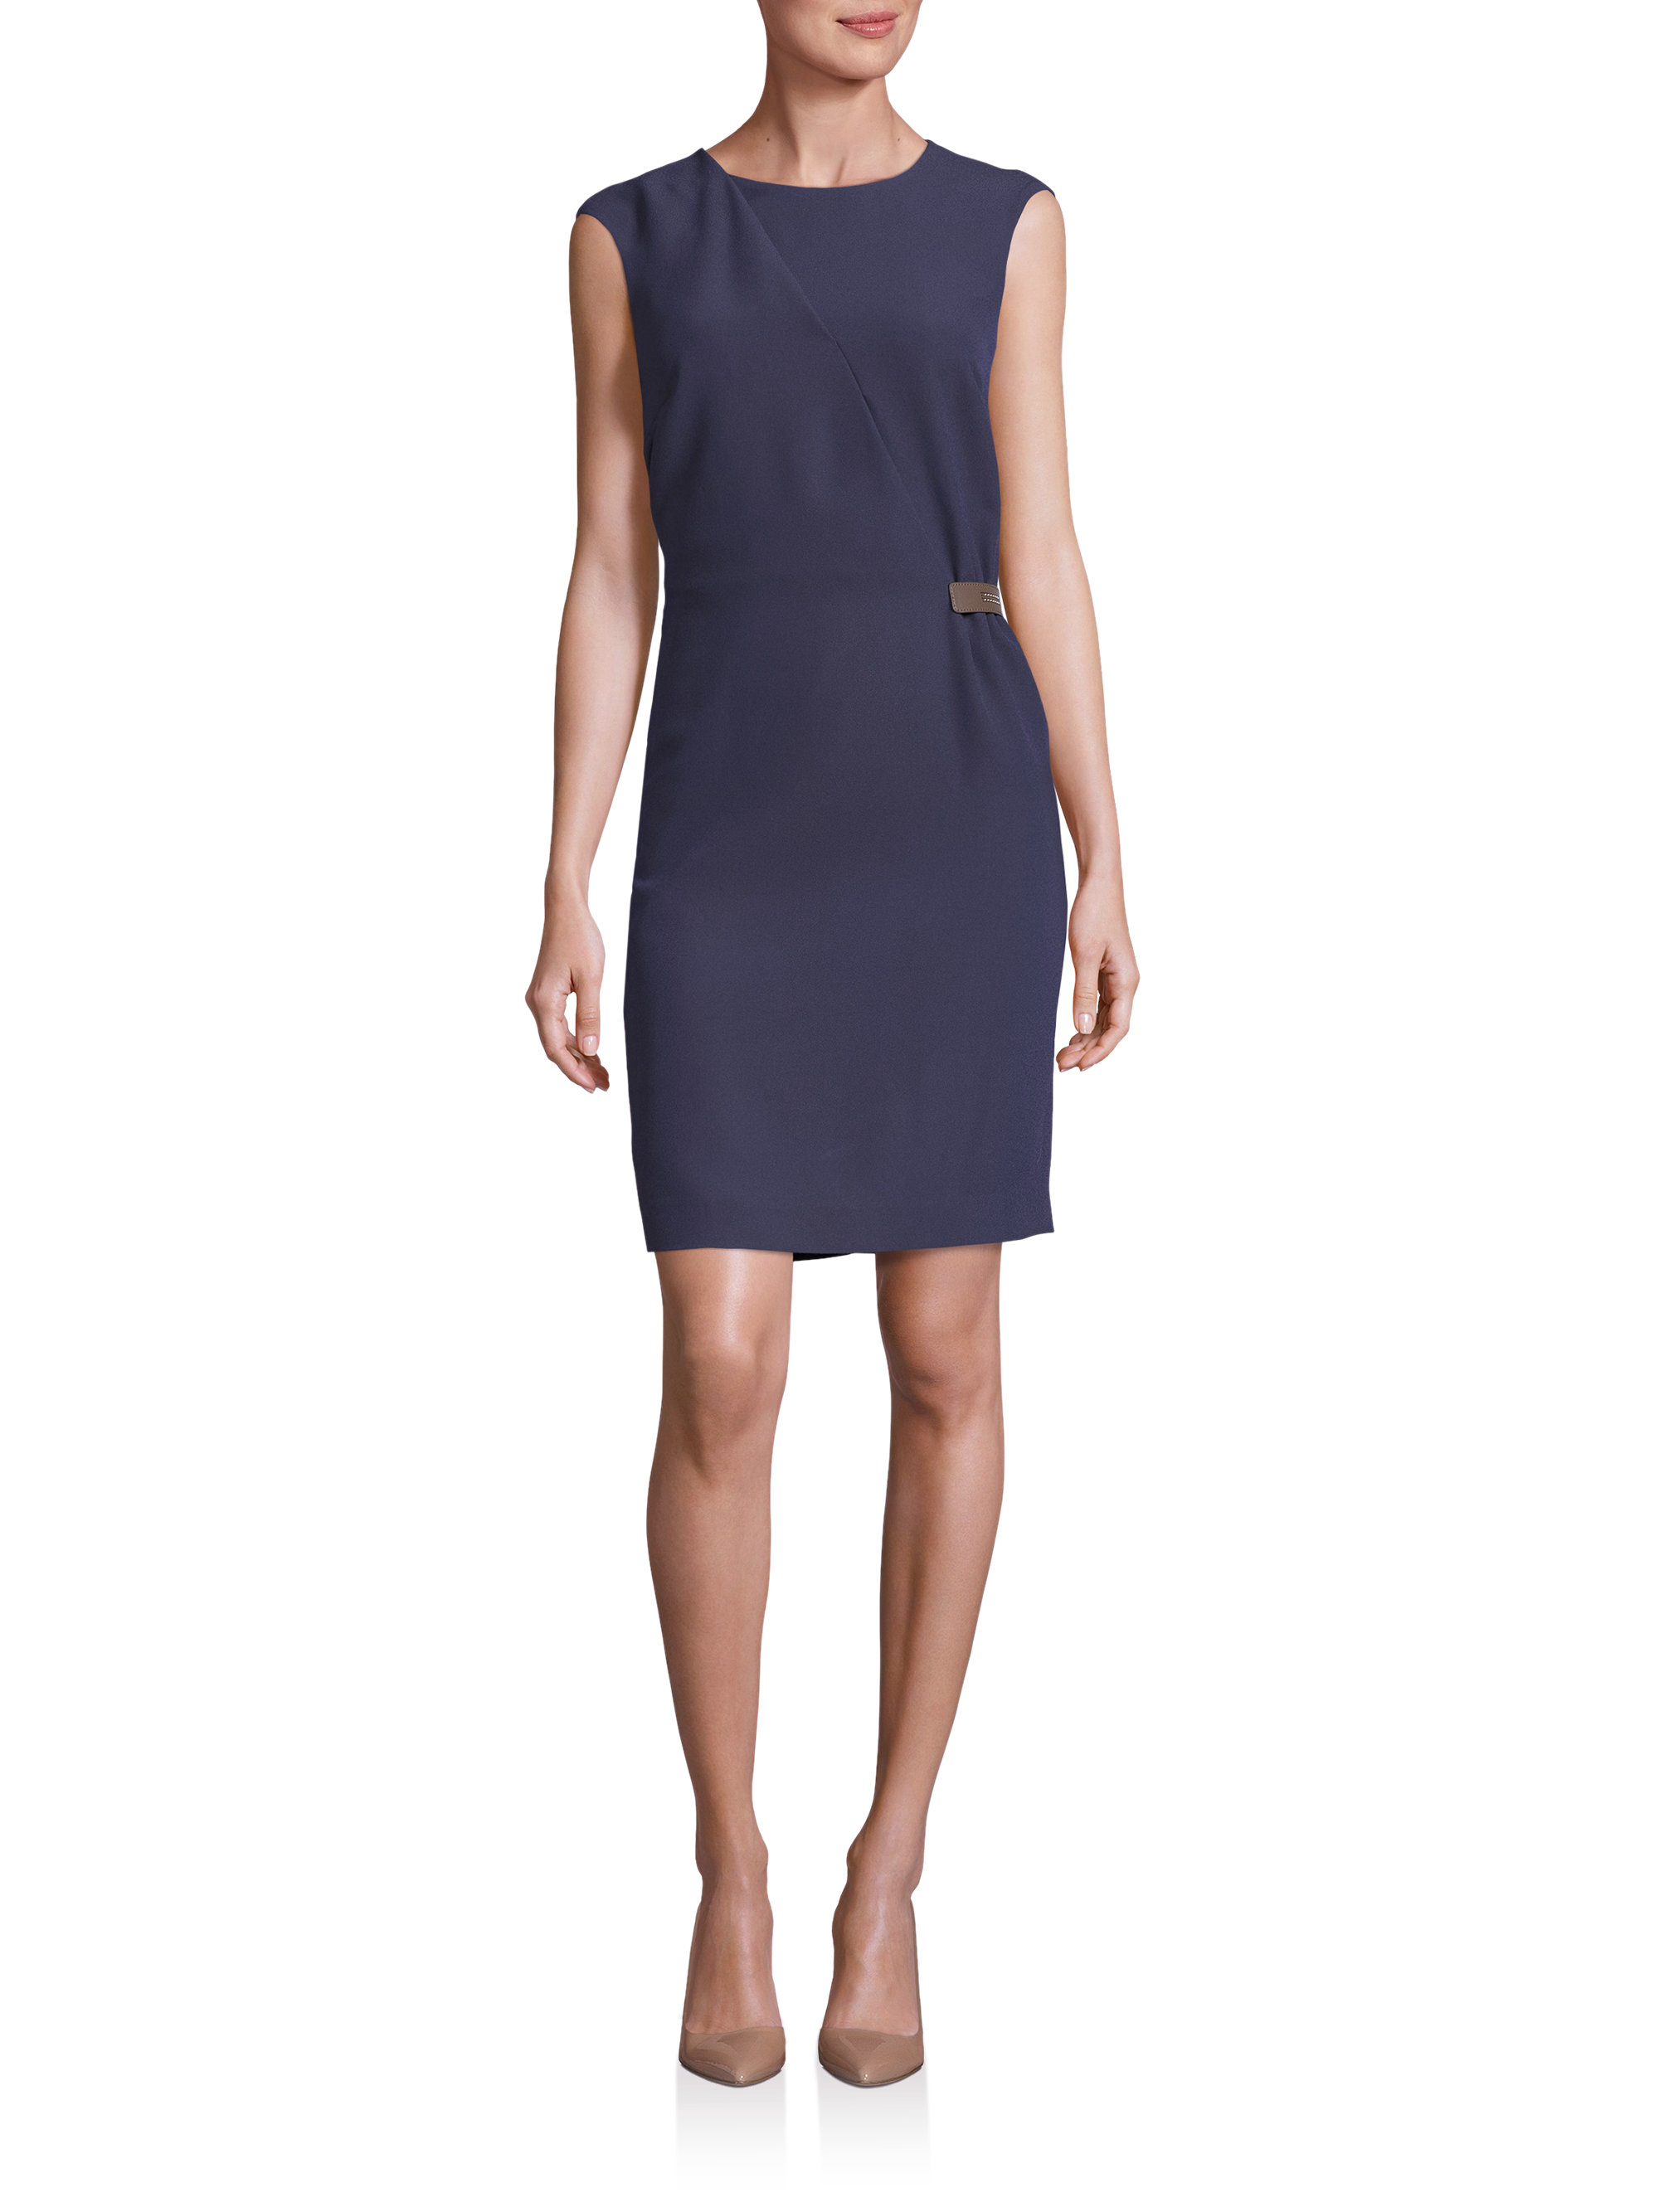 Peserico tab detail sheath dress in blue lyst for Saks fifth avenue wedding guest dresses